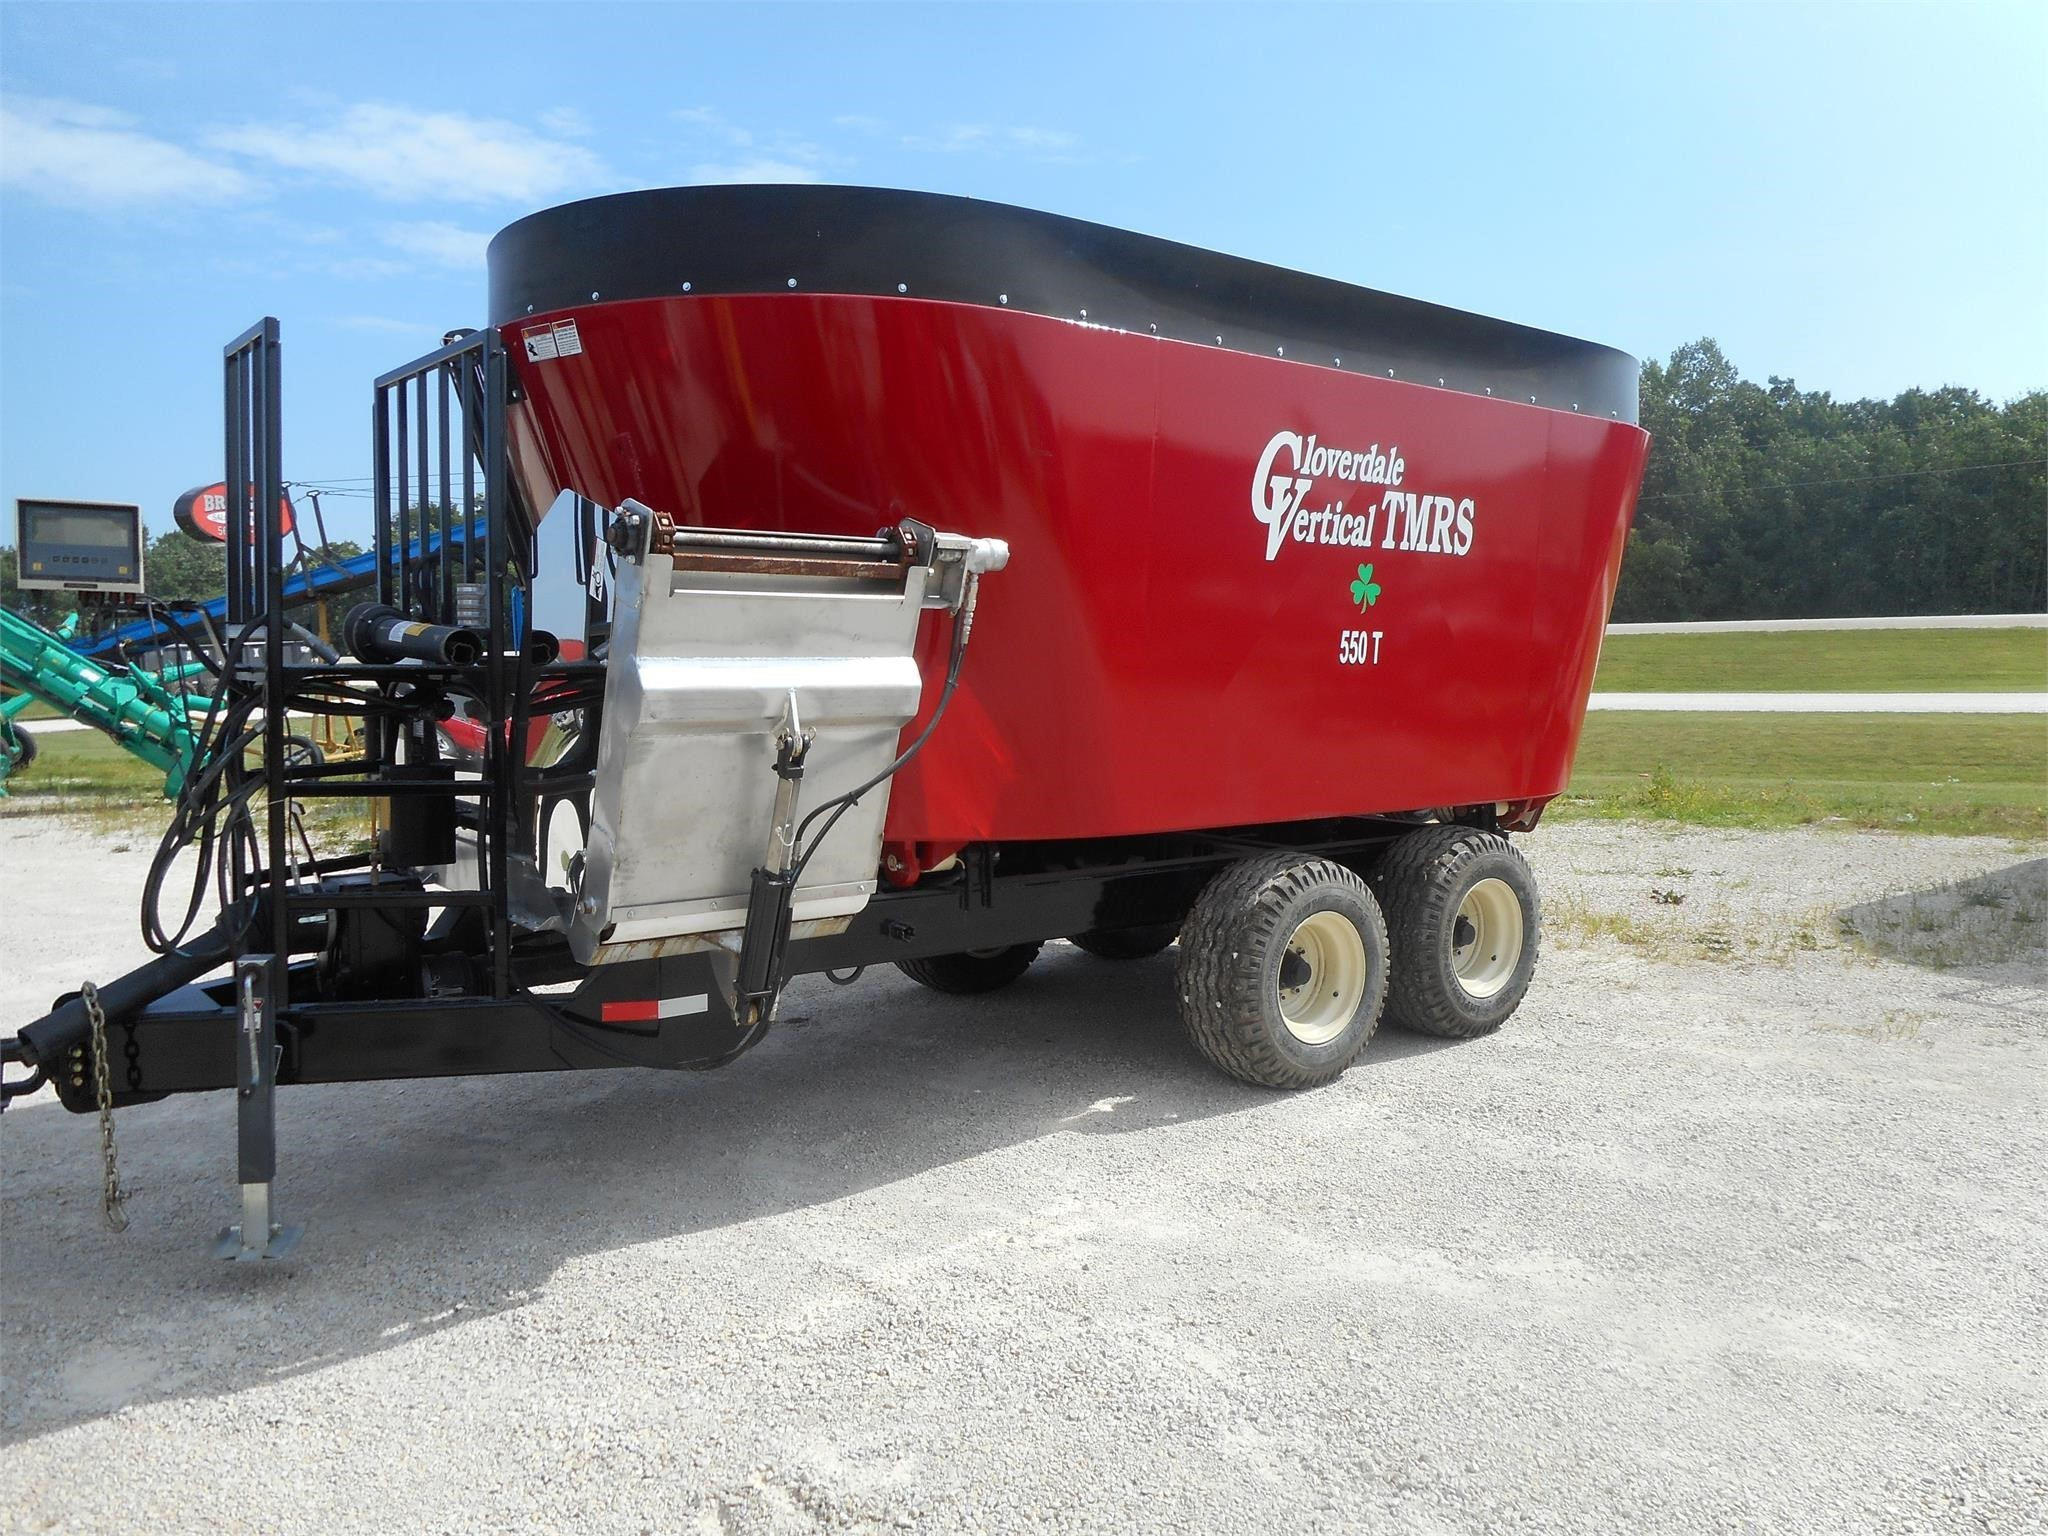 2020 Cloverdale 550T Grinders and Mixer